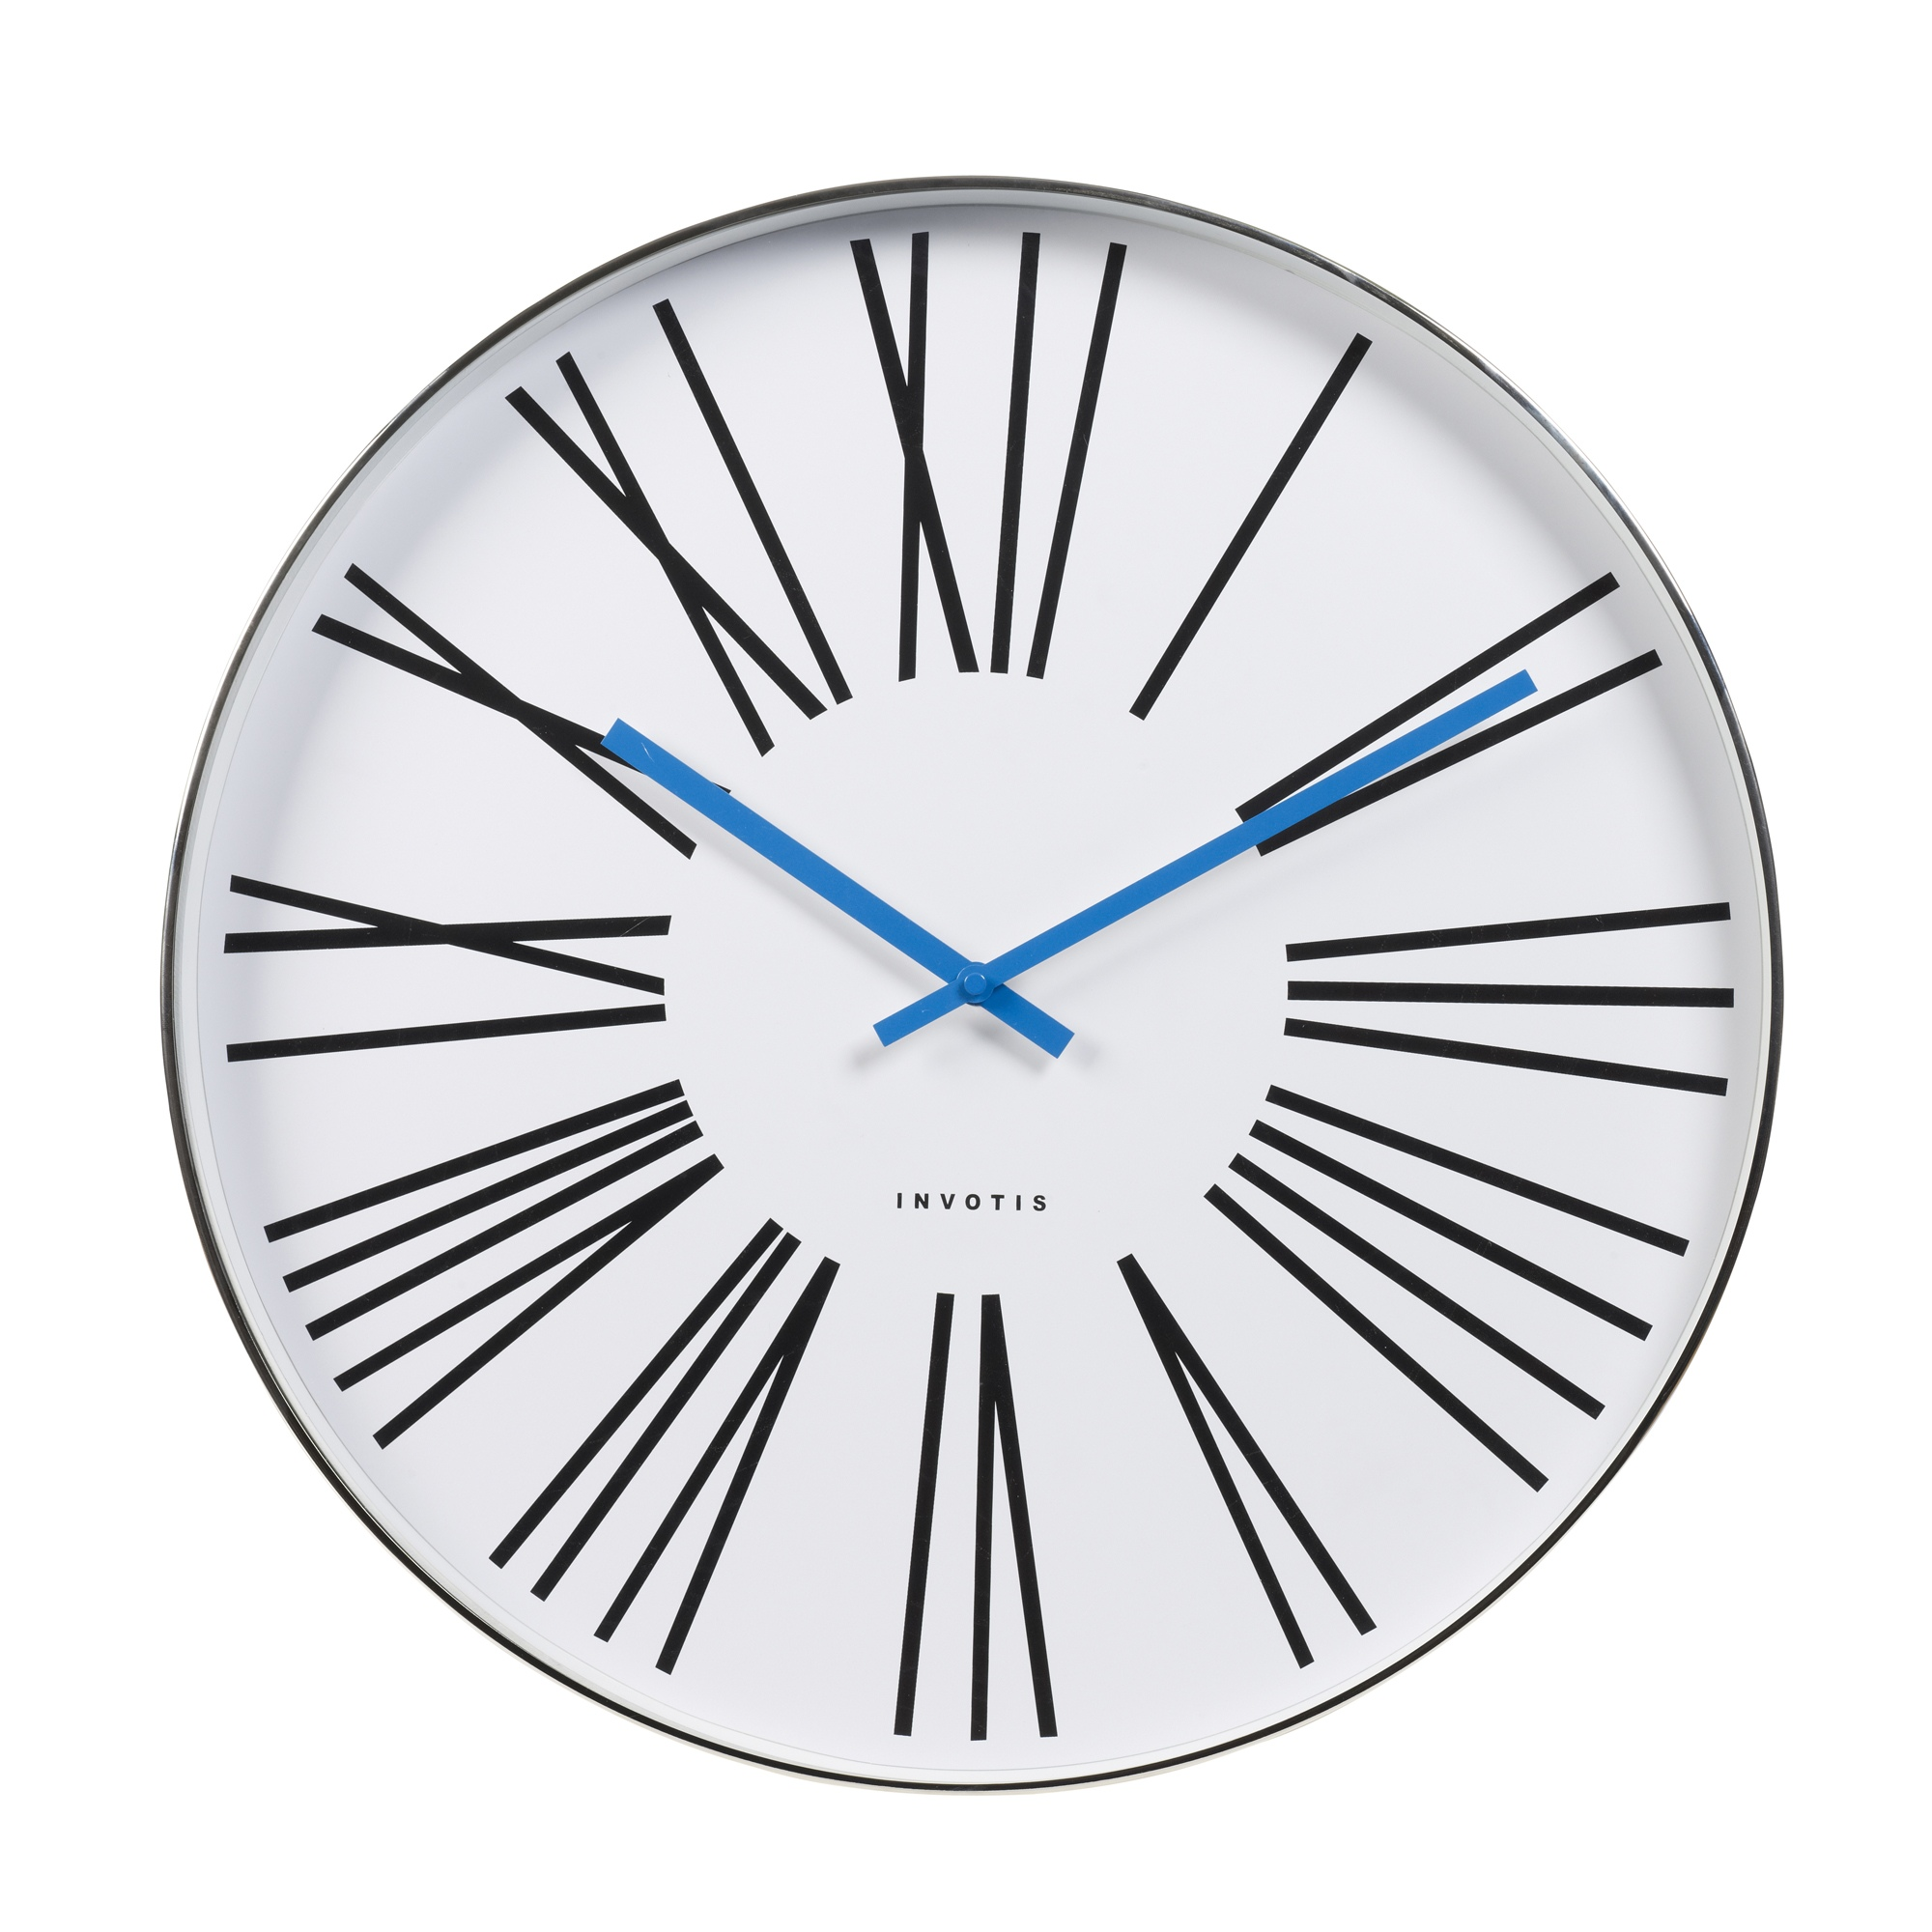 Invotis large 50cm chrome case wall clock roman numerals blue hands modern style ebay - Large roman numeral wall clocks ...